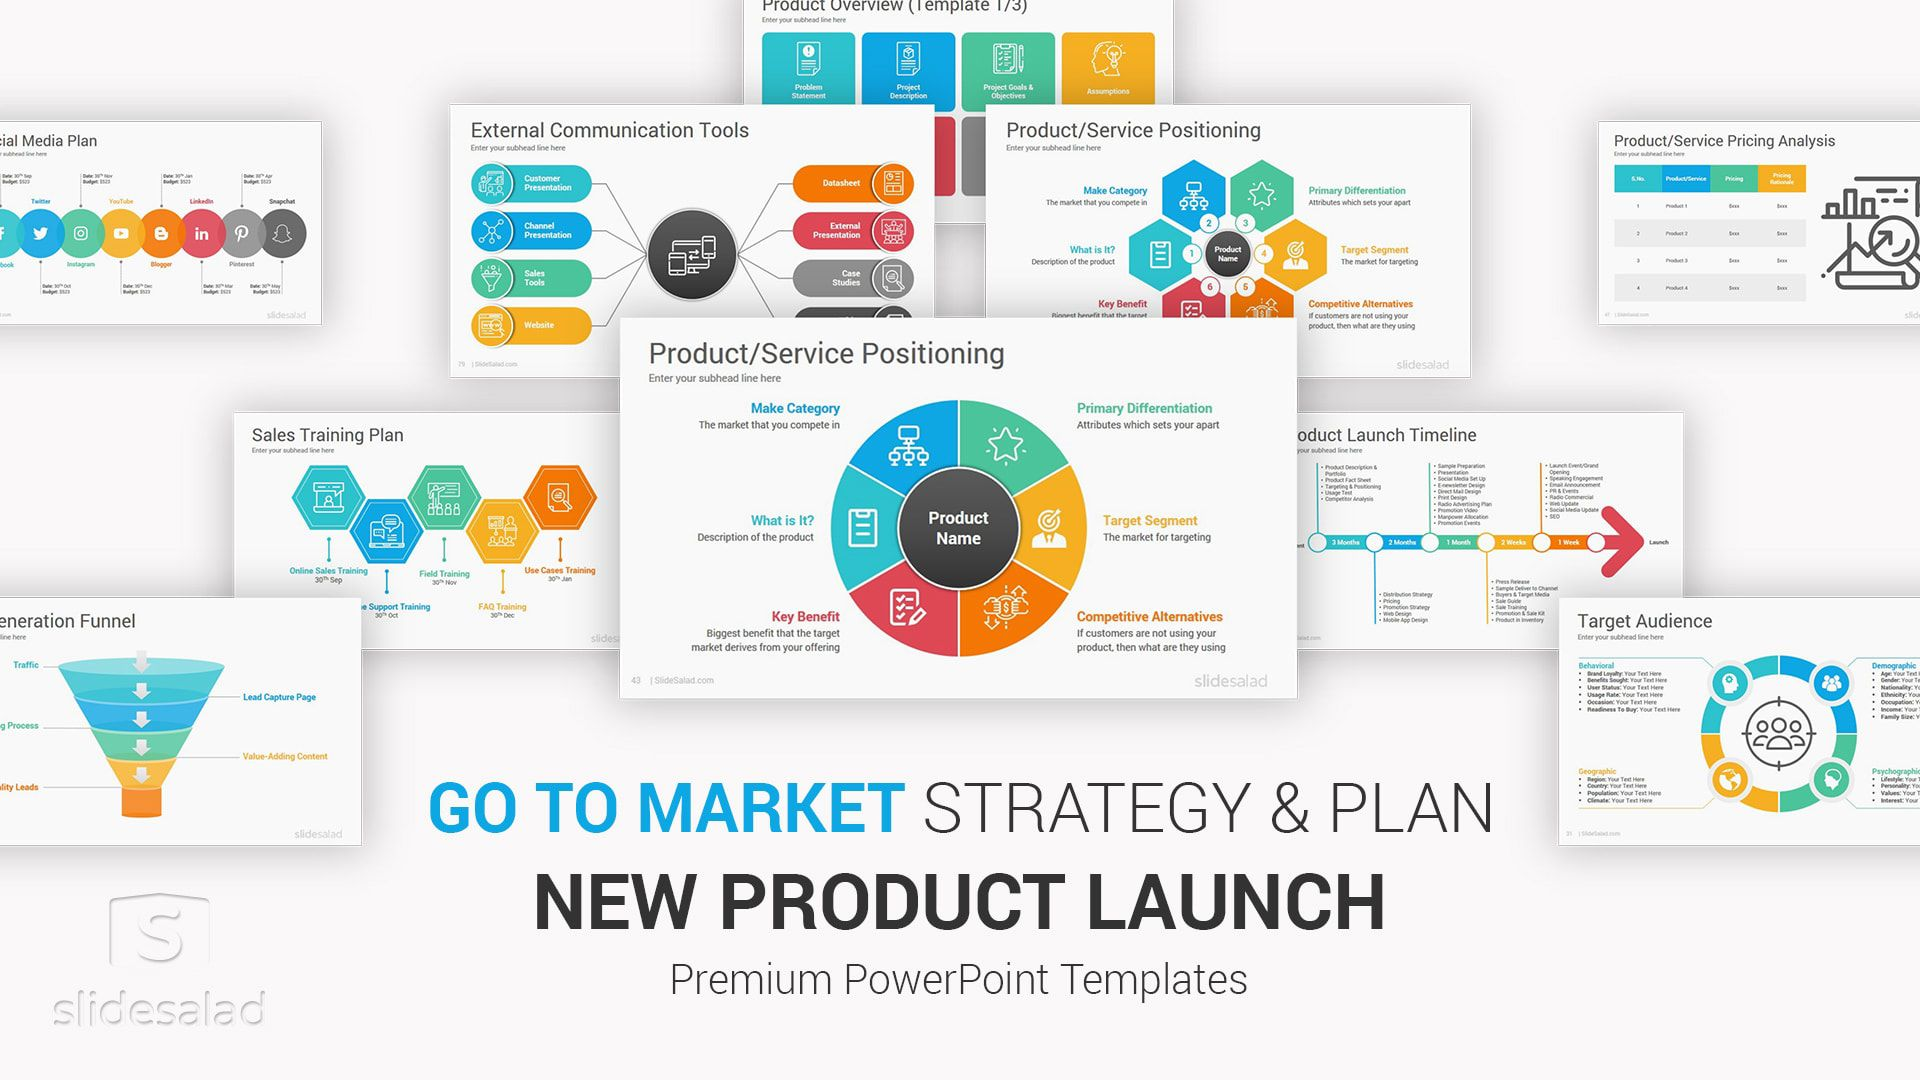 003 Excellent Product Launch Plan Powerpoint Template Free Example Full